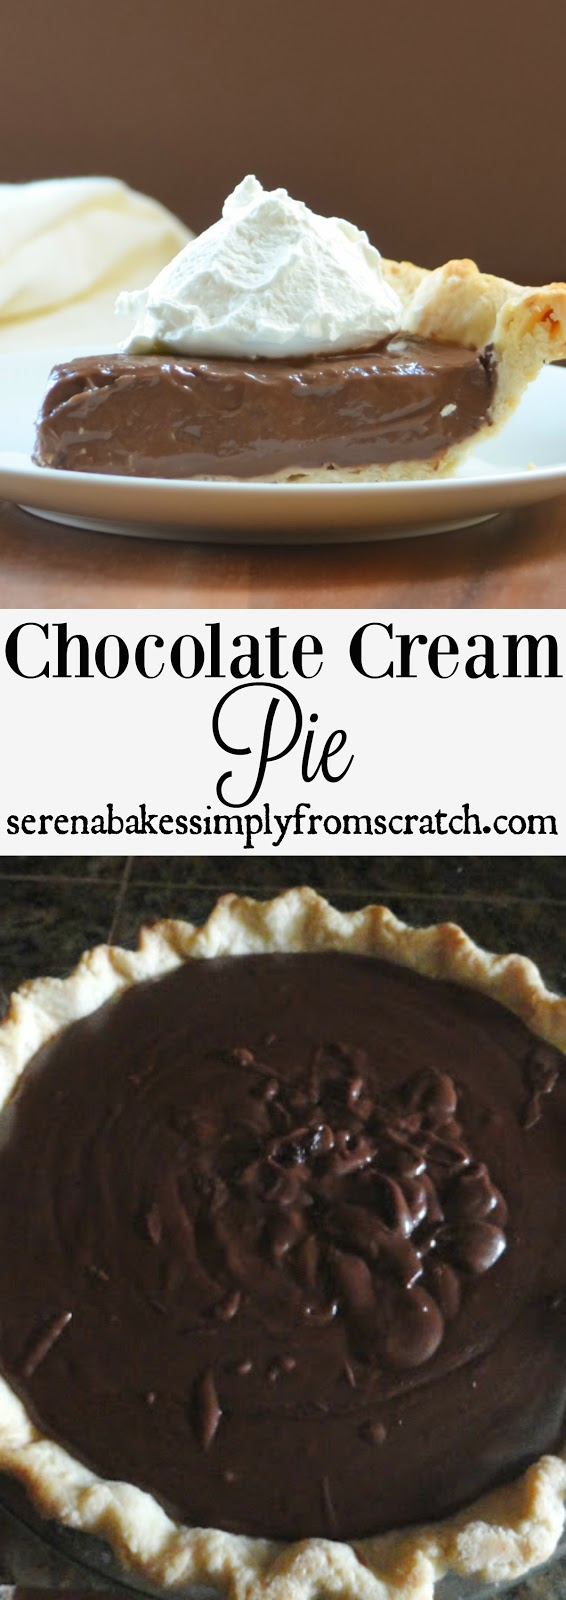 Chocolate Cream Pie with a dairy free option. Perfect for your Thanksgiving or Christmas party! serenabakessimplyfromscratch.com